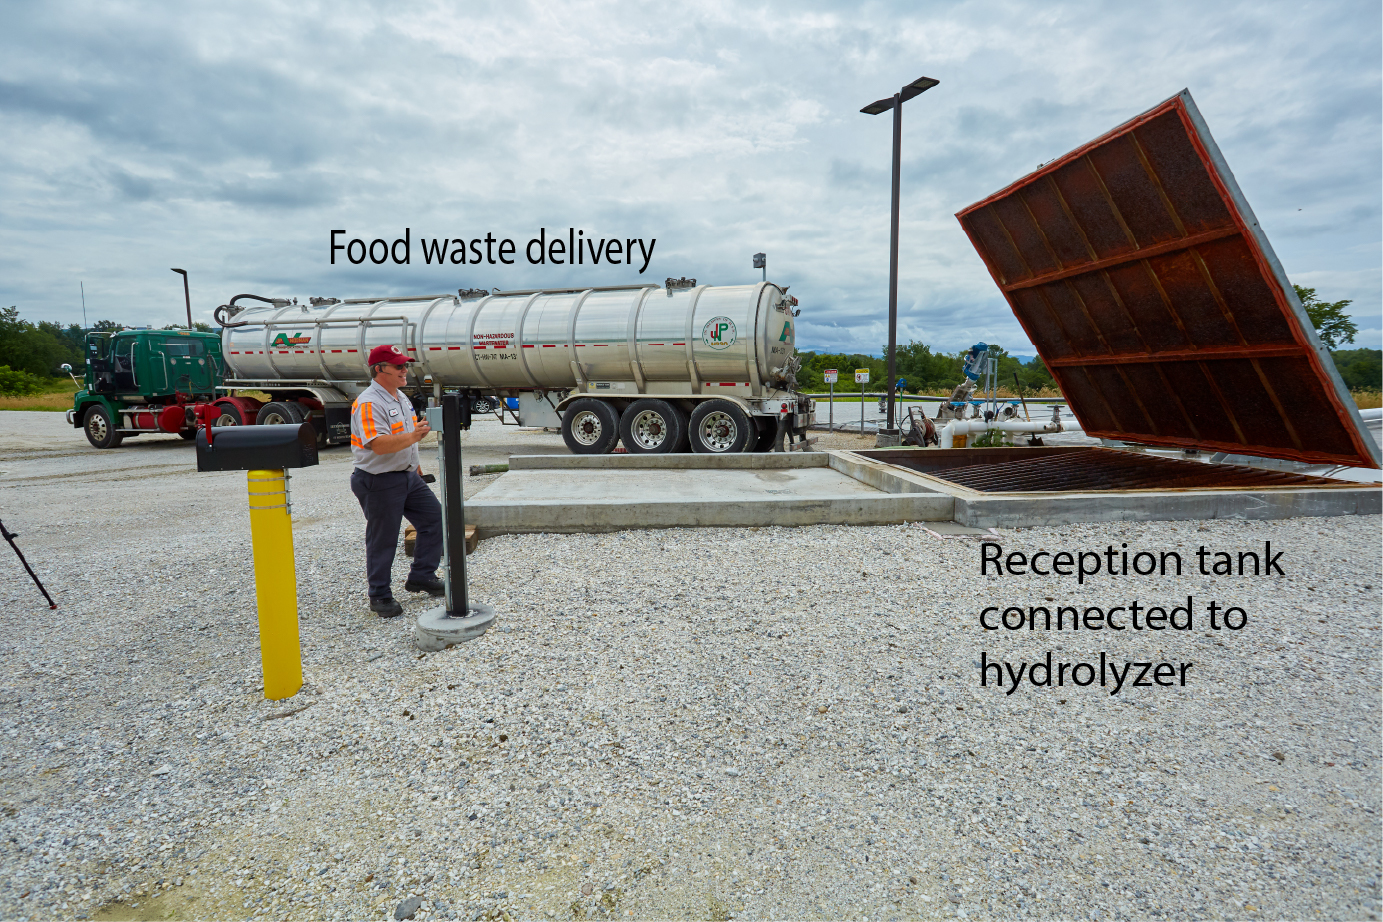 Goodrich Farm Food Waste Delivery Reception Tank labeled